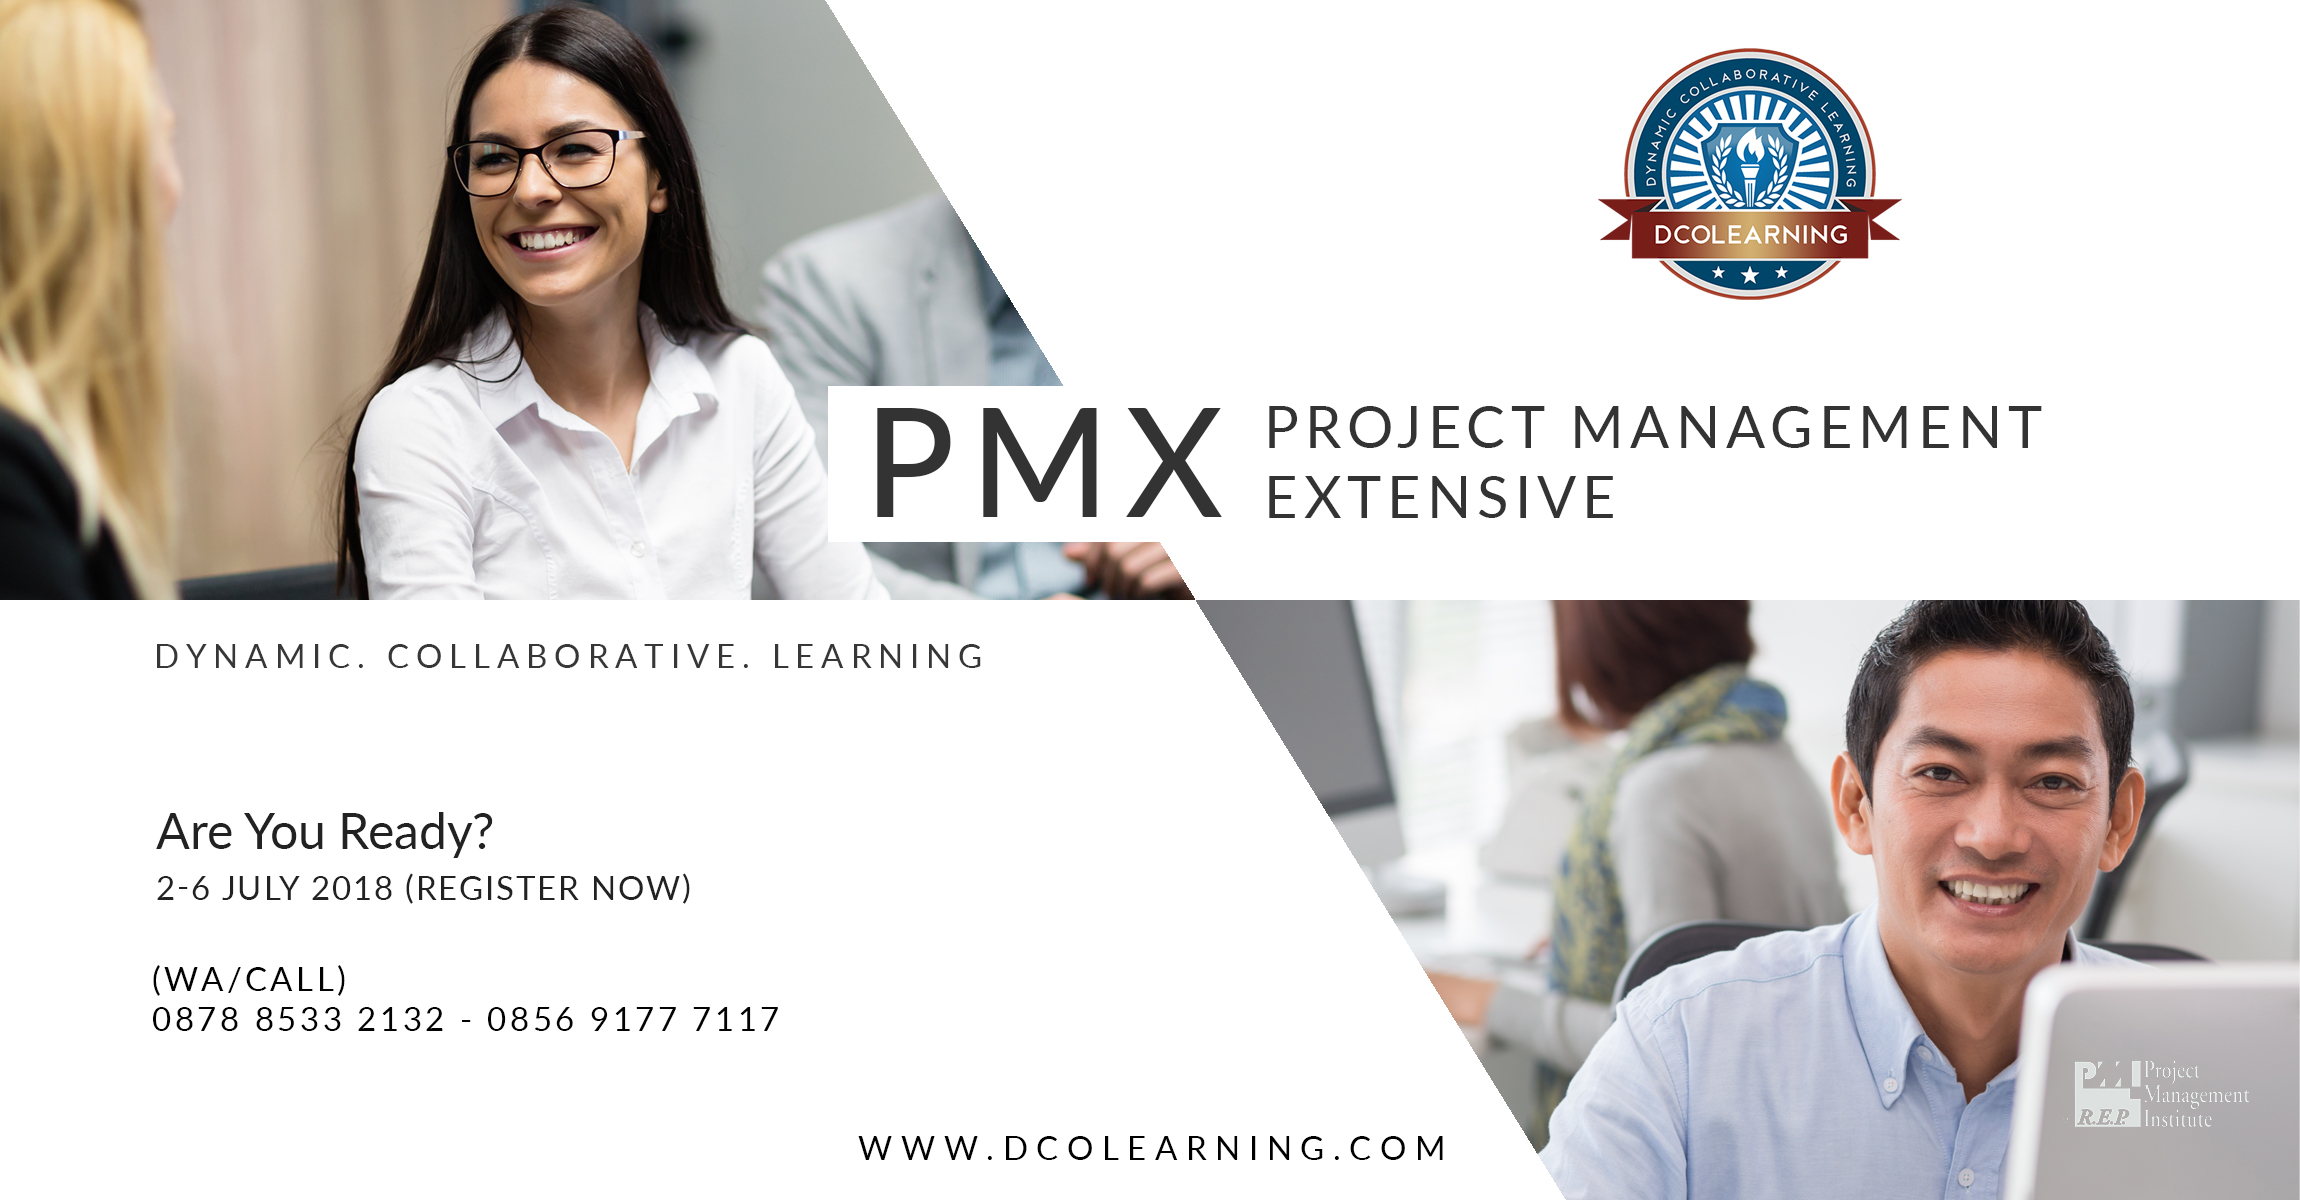 PMX Project Management Extensive Program